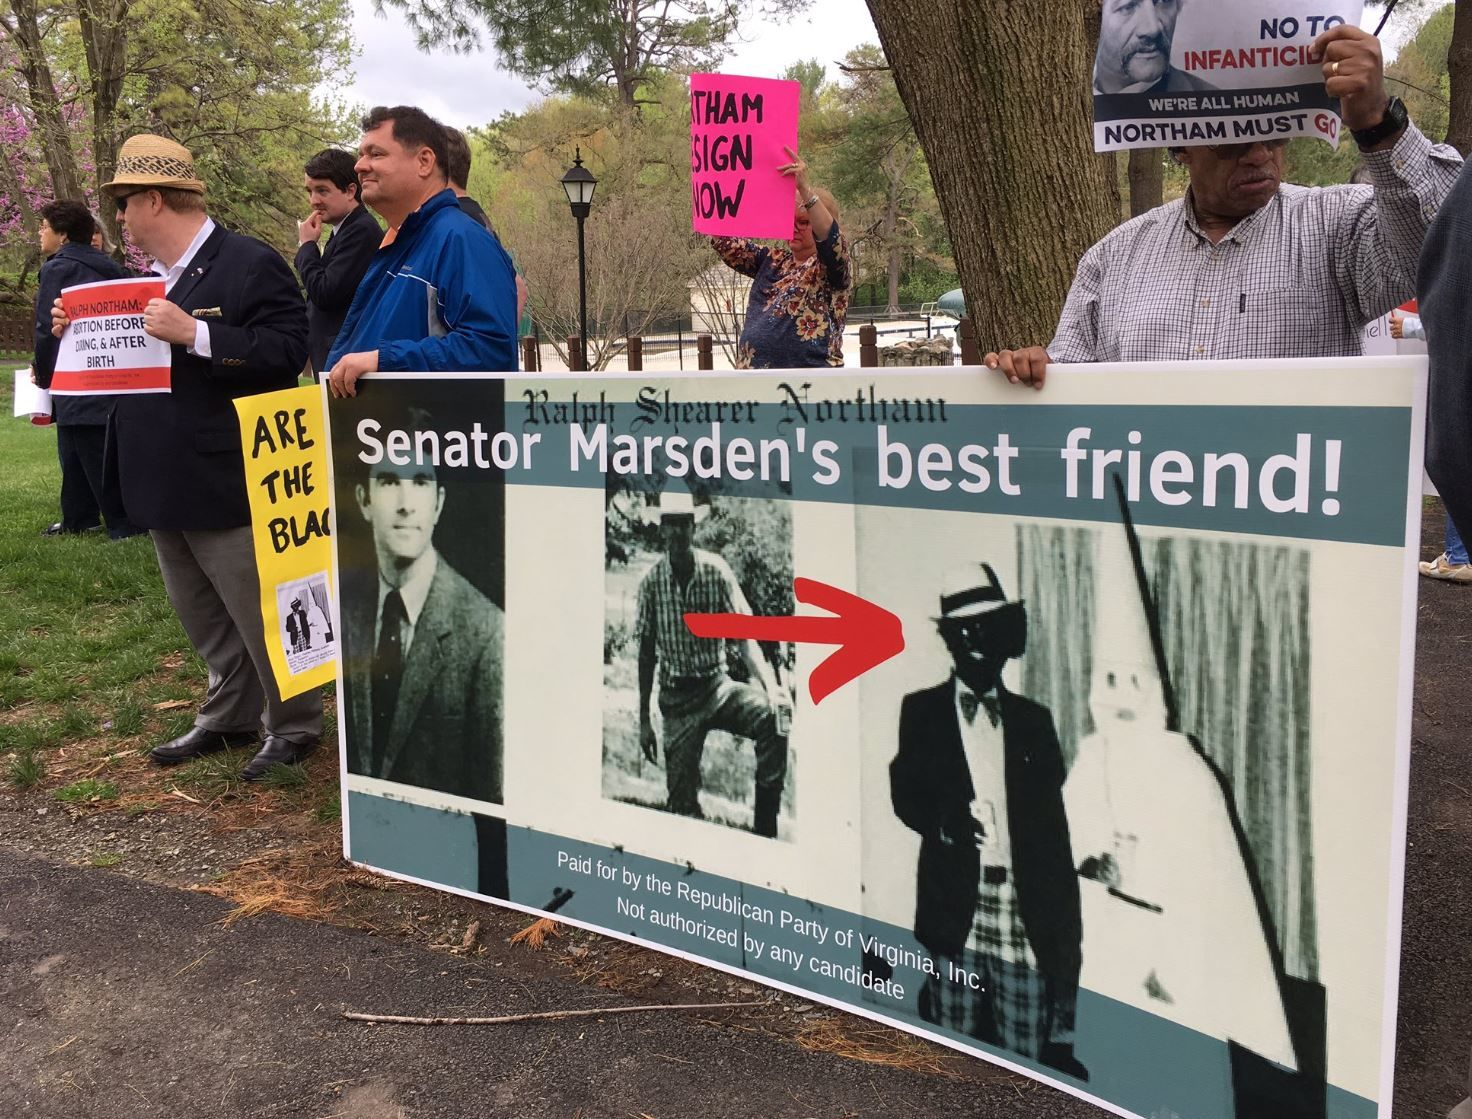 Westlake Legal Group northam 'The outrage stays:' Protesters at Va. fundraiser haven't forgotten Northam racist photo scandal Virginia ralph northam Local Politics and Elections News Local News Latest News Fairfax County, VA News dave marsden burke community church blackface